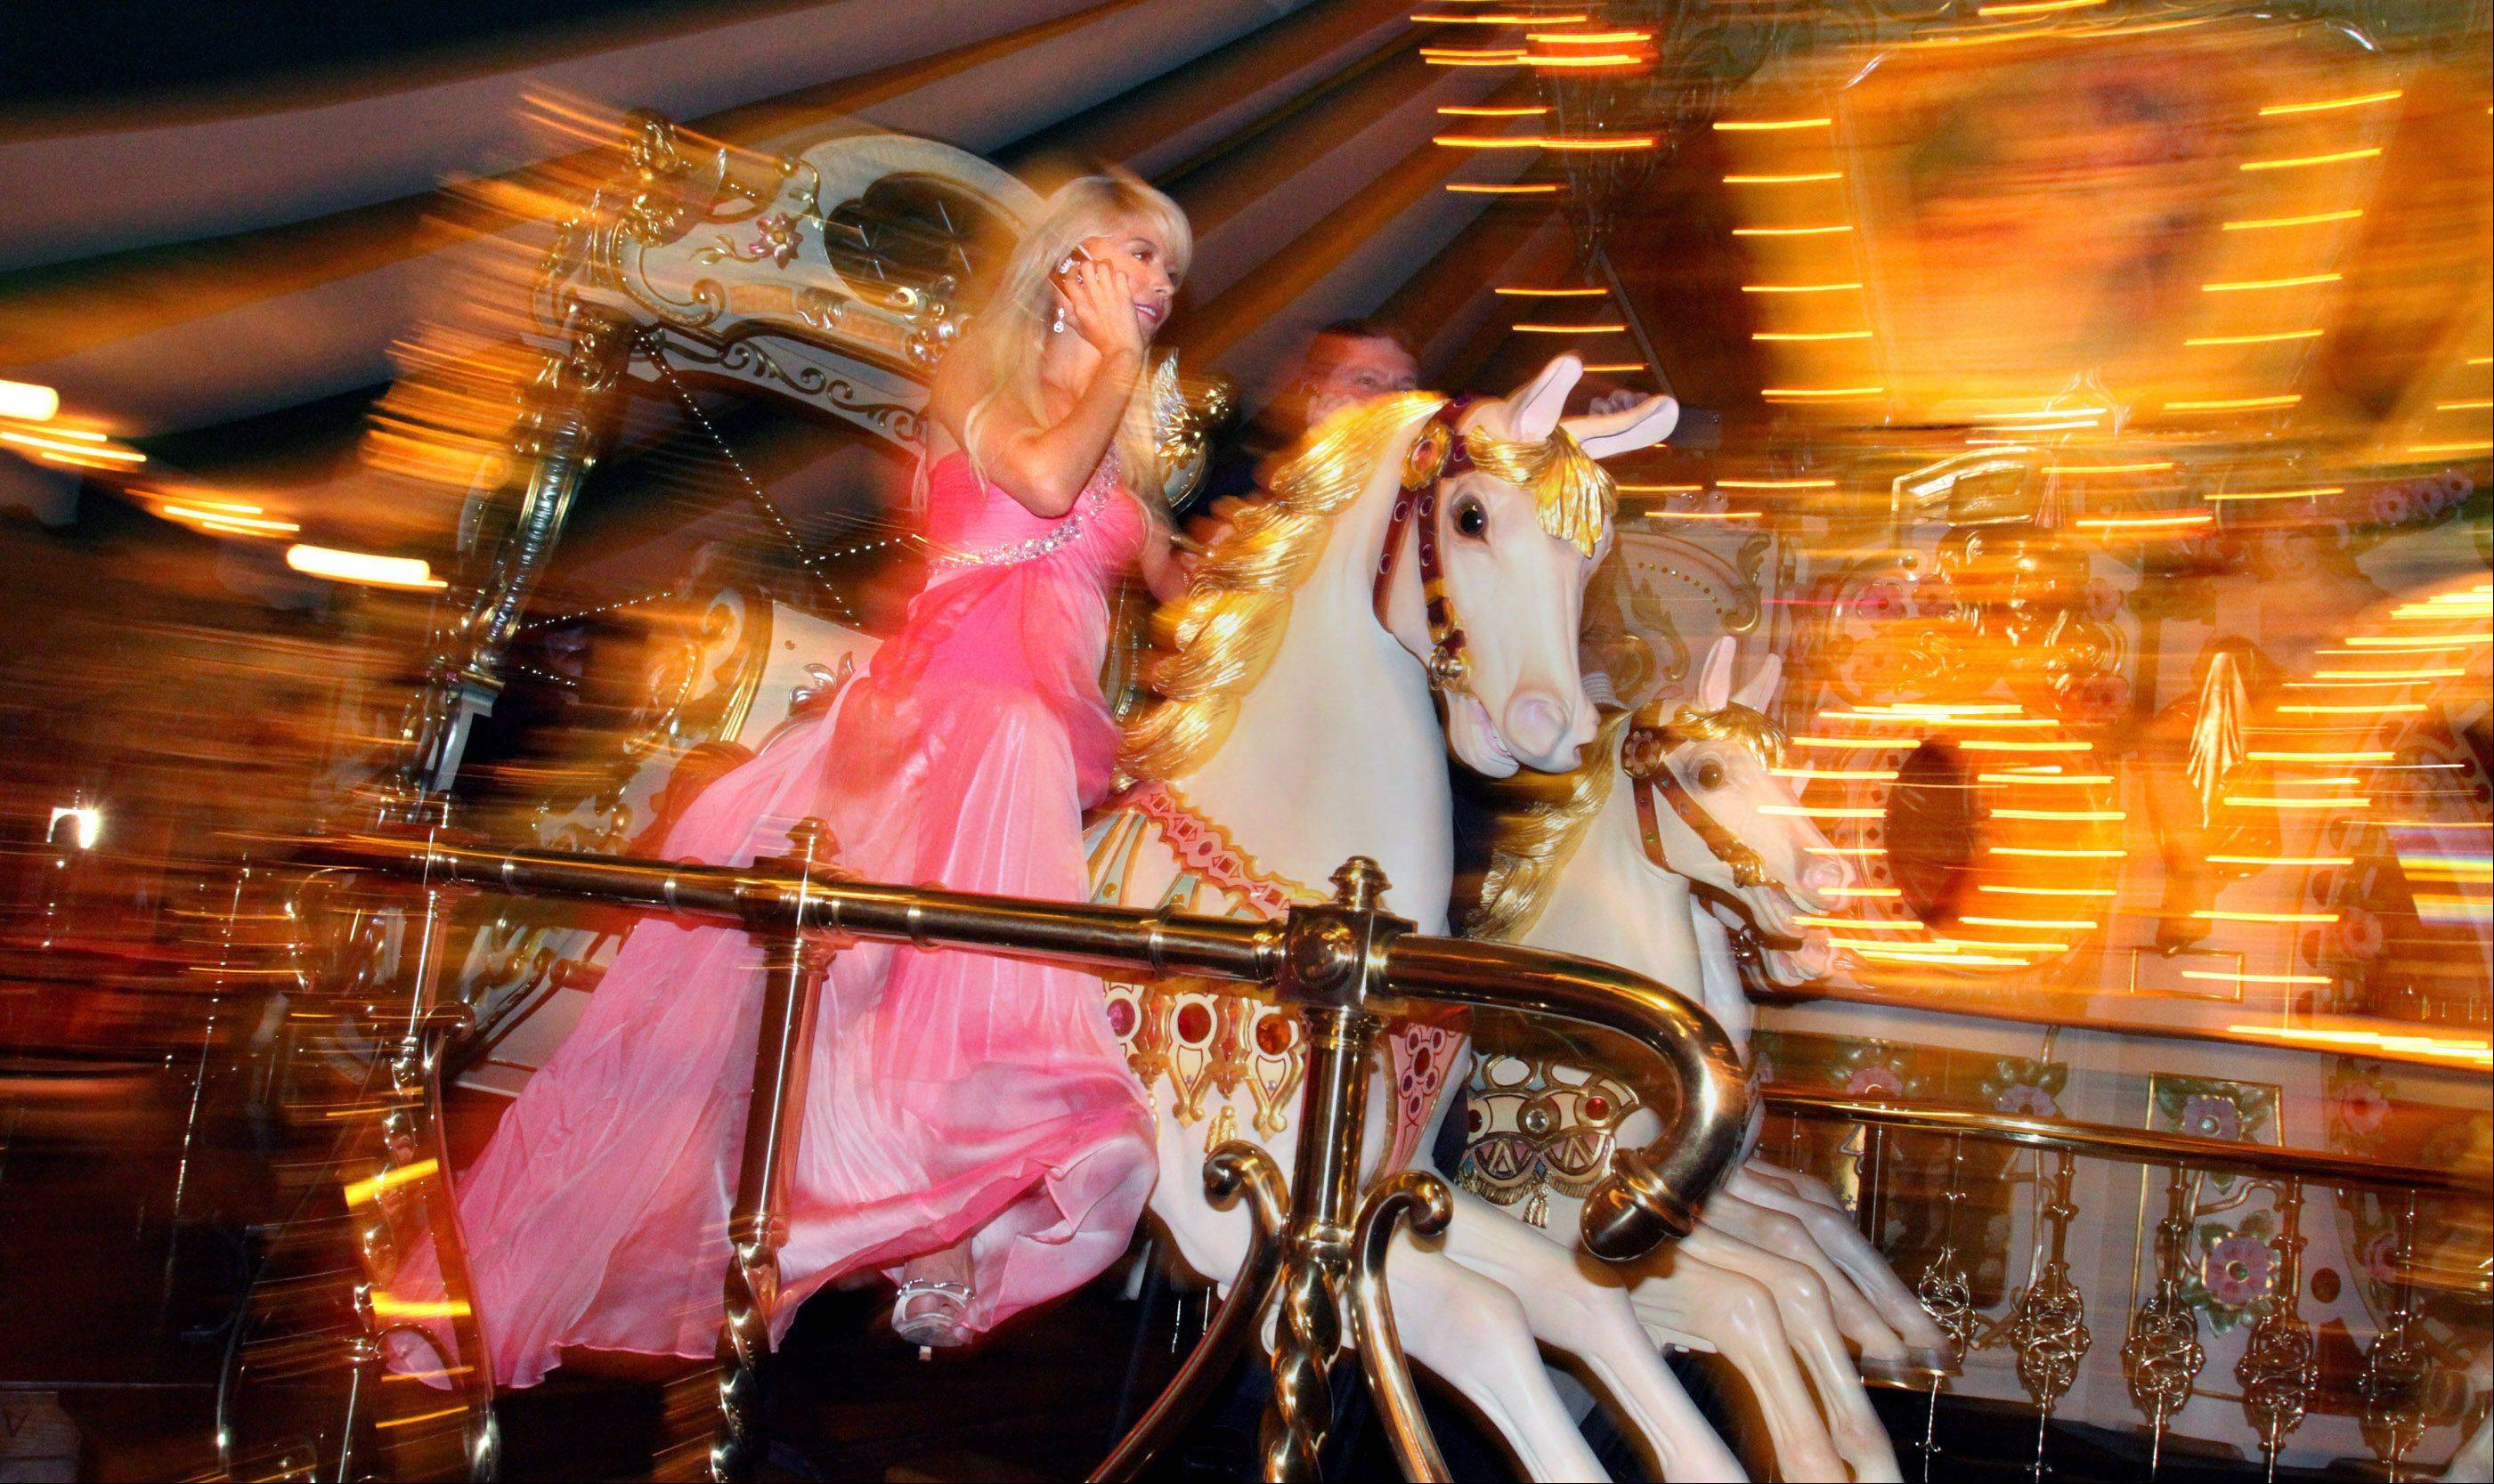 Renata Costa raises funds using her cellphone while riding the Eden Palais Carousel.